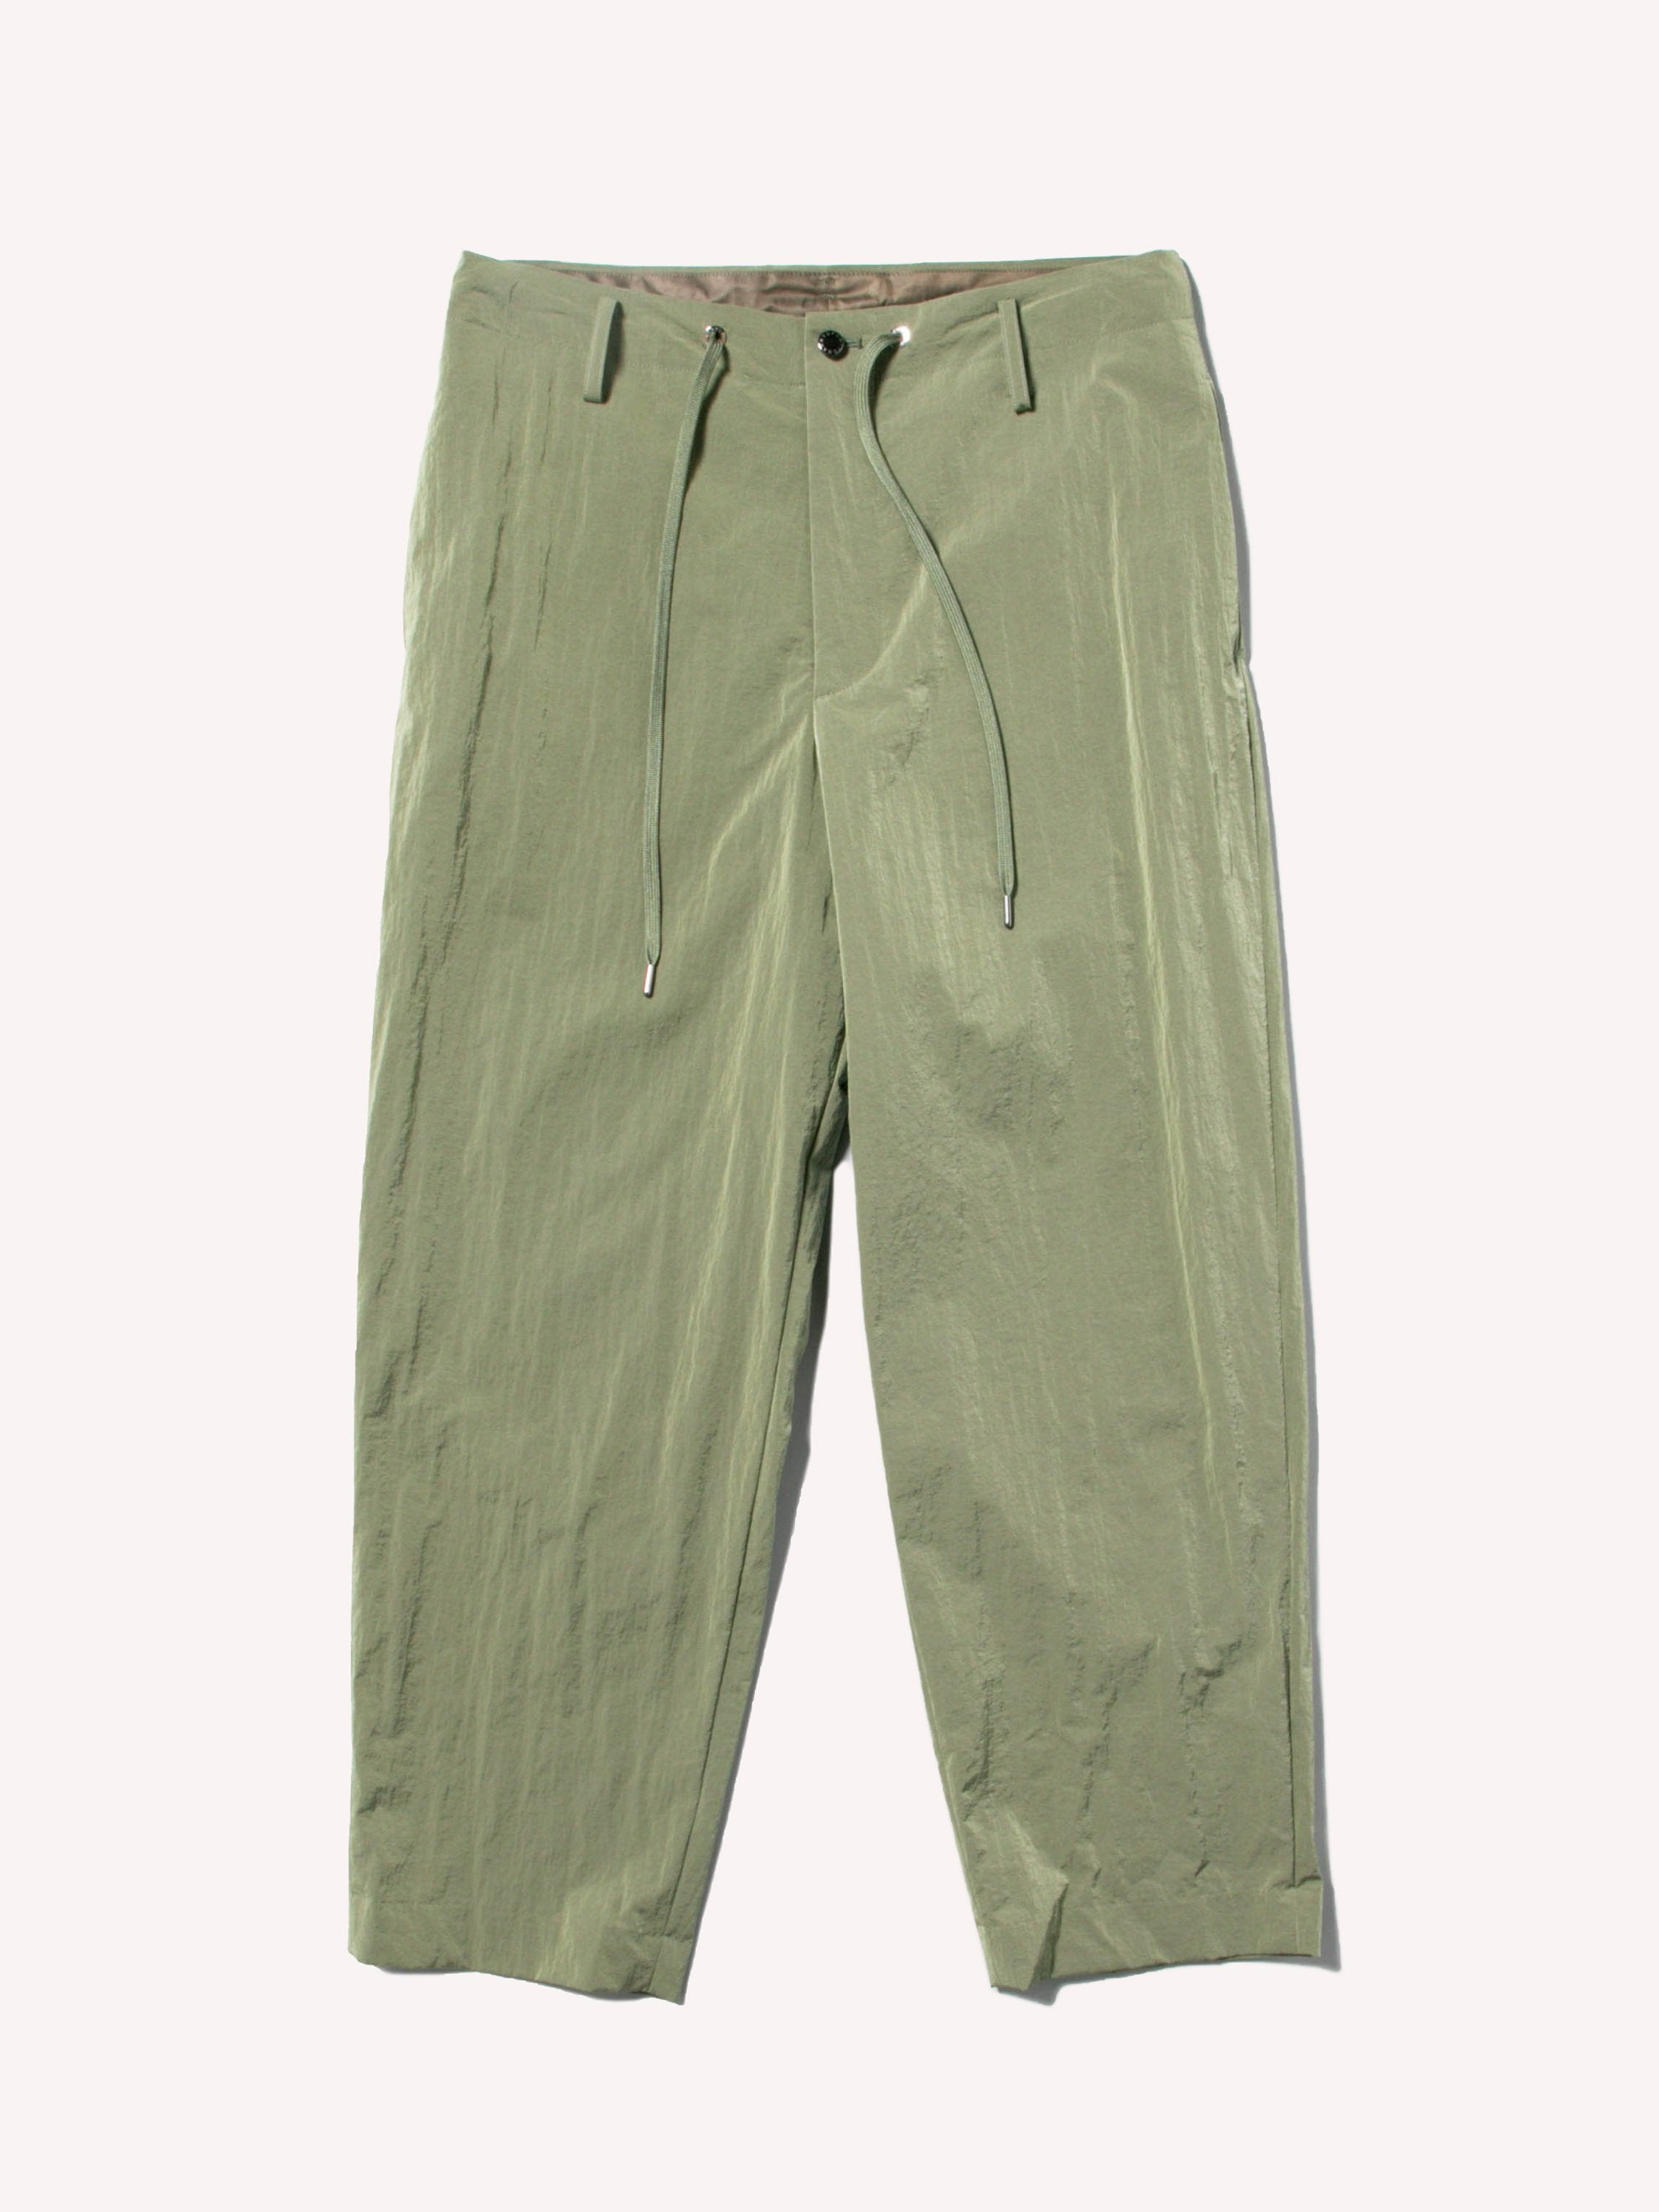 Khaki Green Nylon Drawstring Pants 1